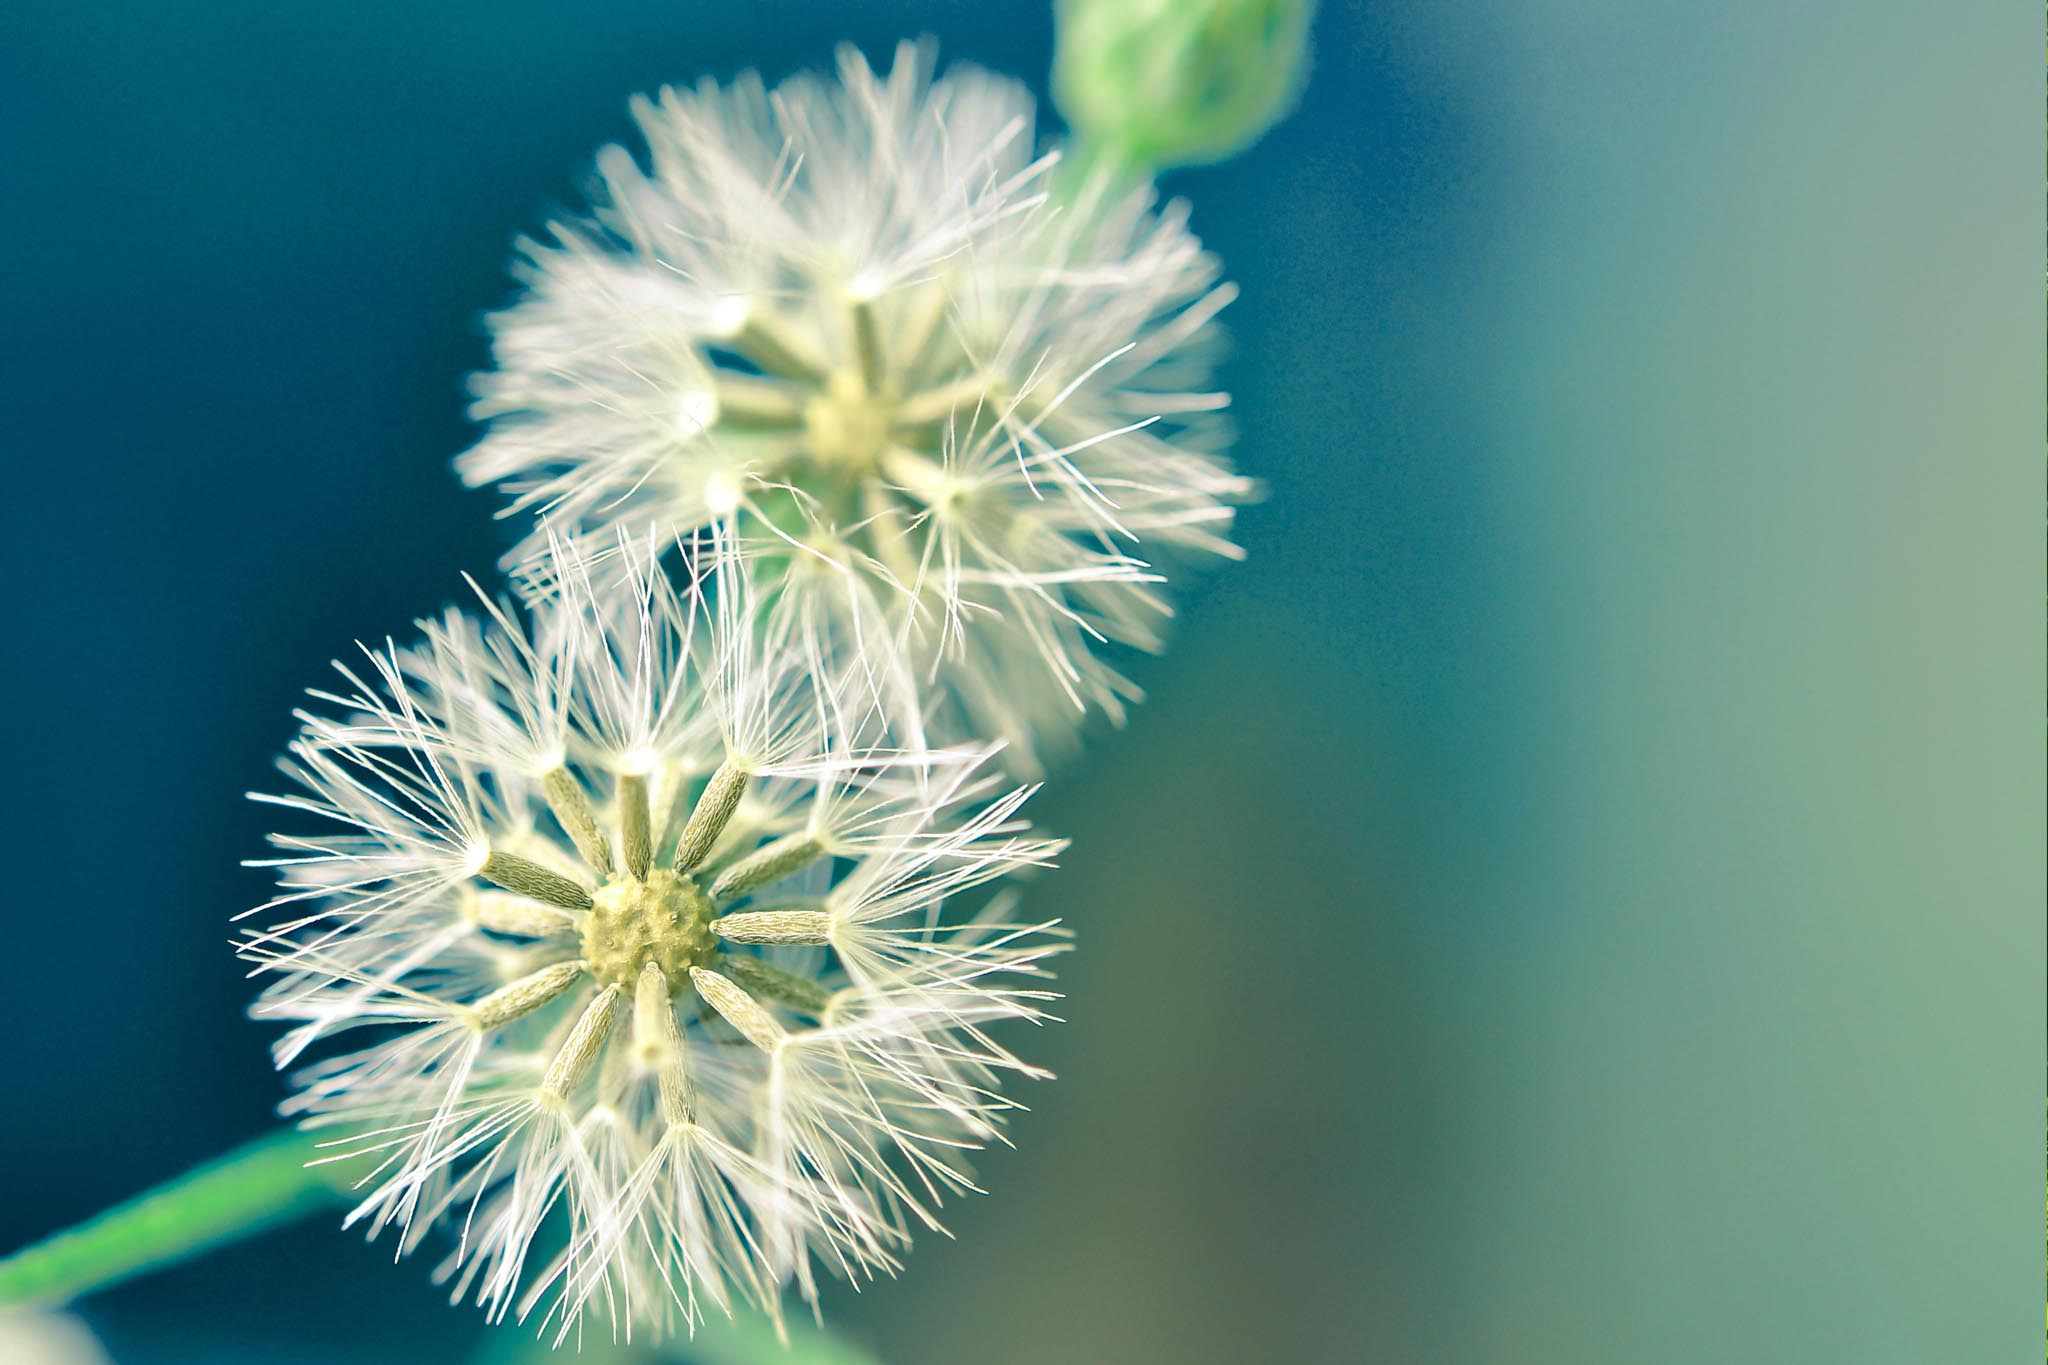 background image of seeding dandelions